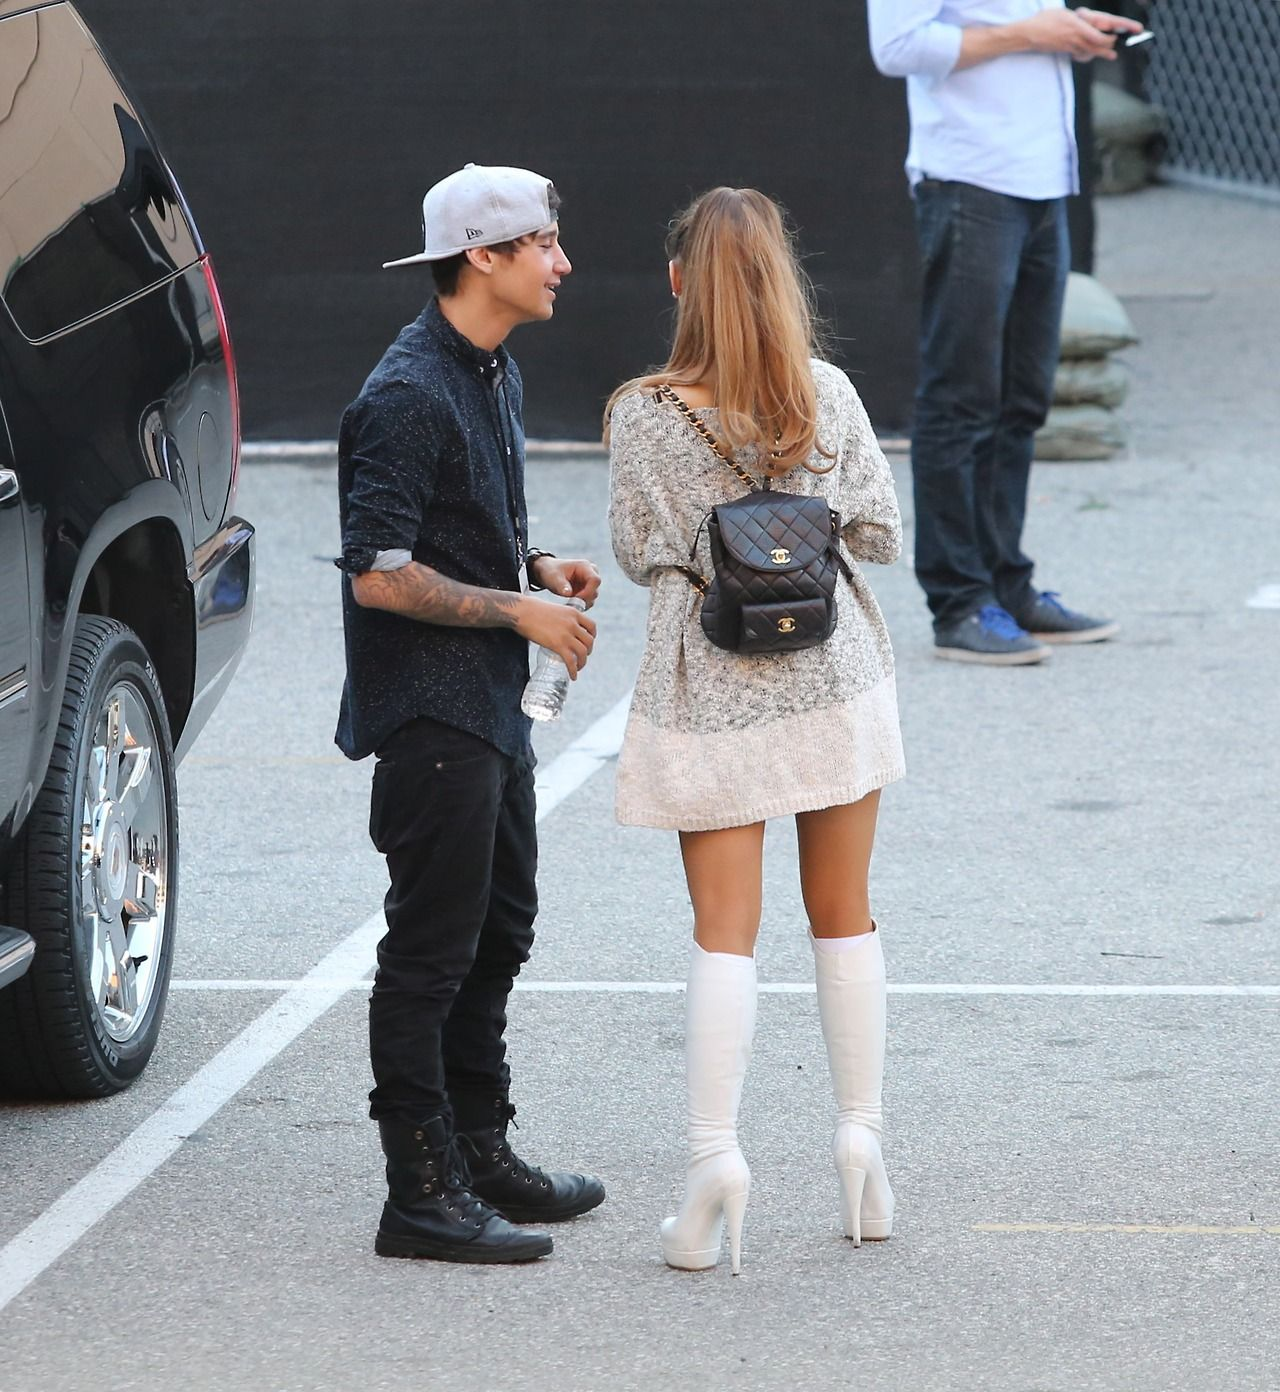 Ariana Grande Outside The Iheartradio Awards 2014 With